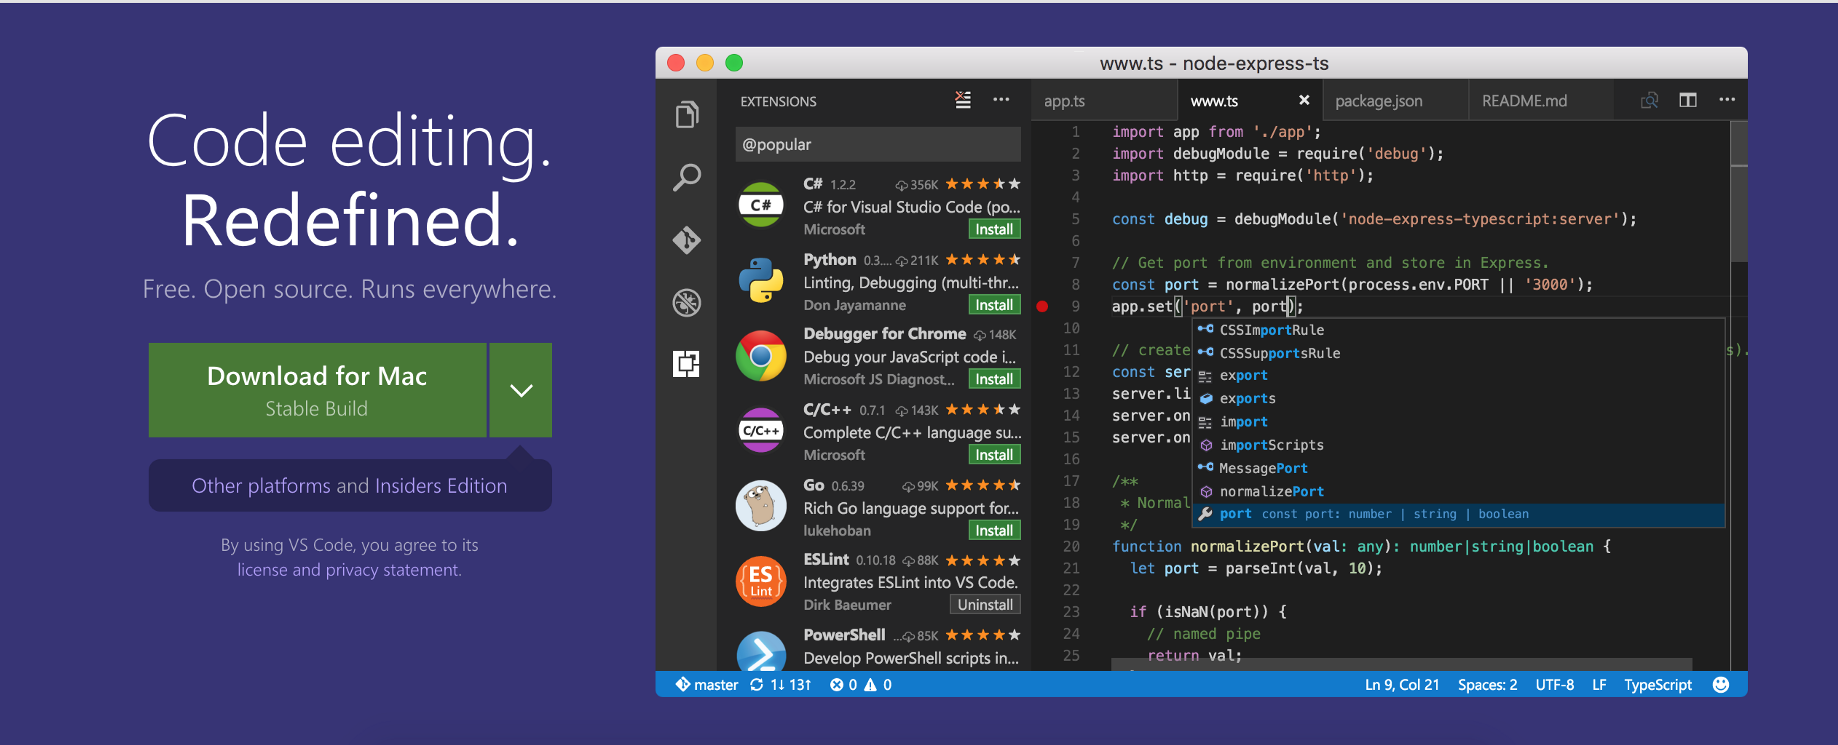 Immensely Upgrade Your Development Environment With These Visual